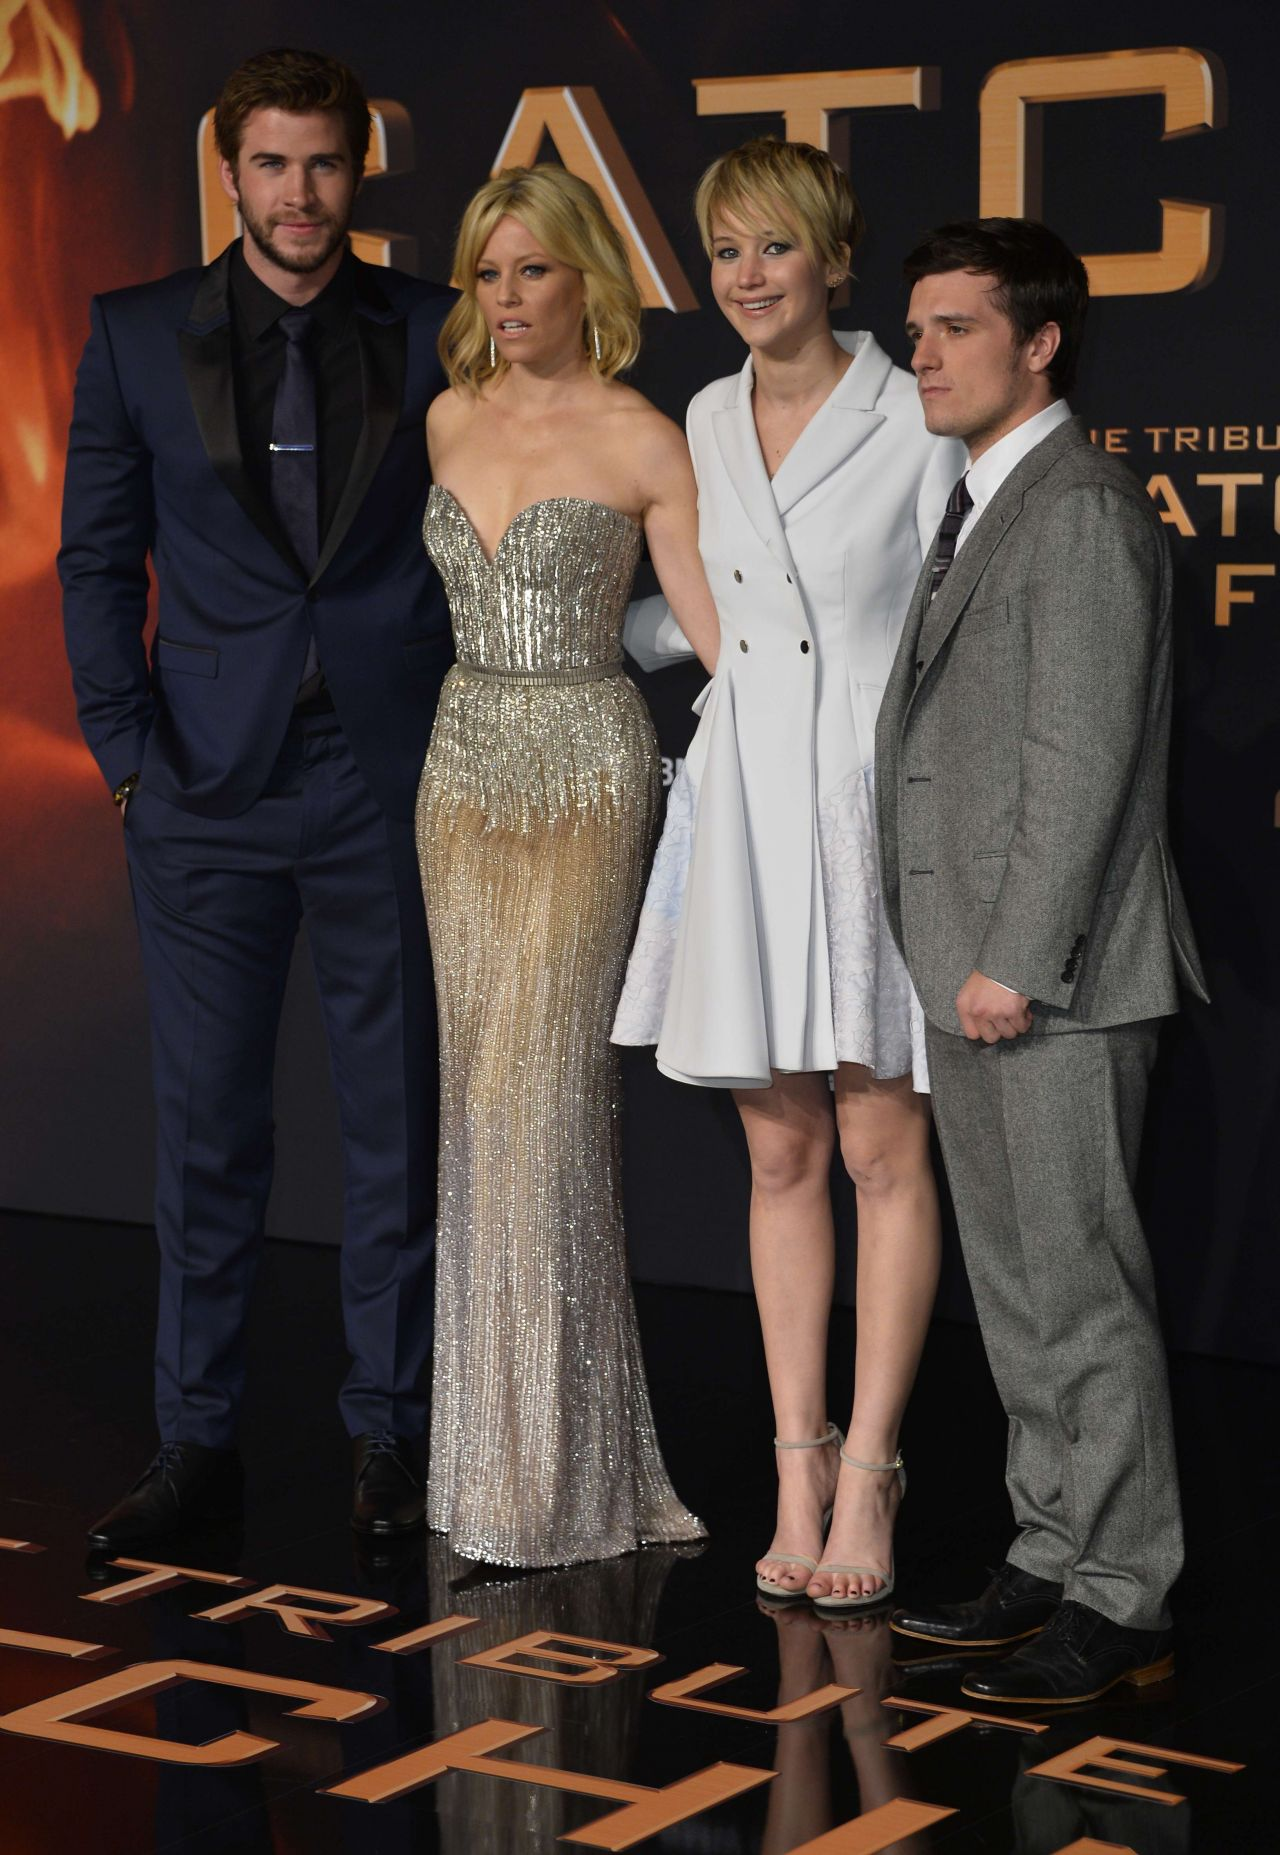 Lawrence red carpet photos the hunger games catching fire jennifer lawrence red carpet photos the hunger games catching fire premiere in berlin voltagebd Gallery